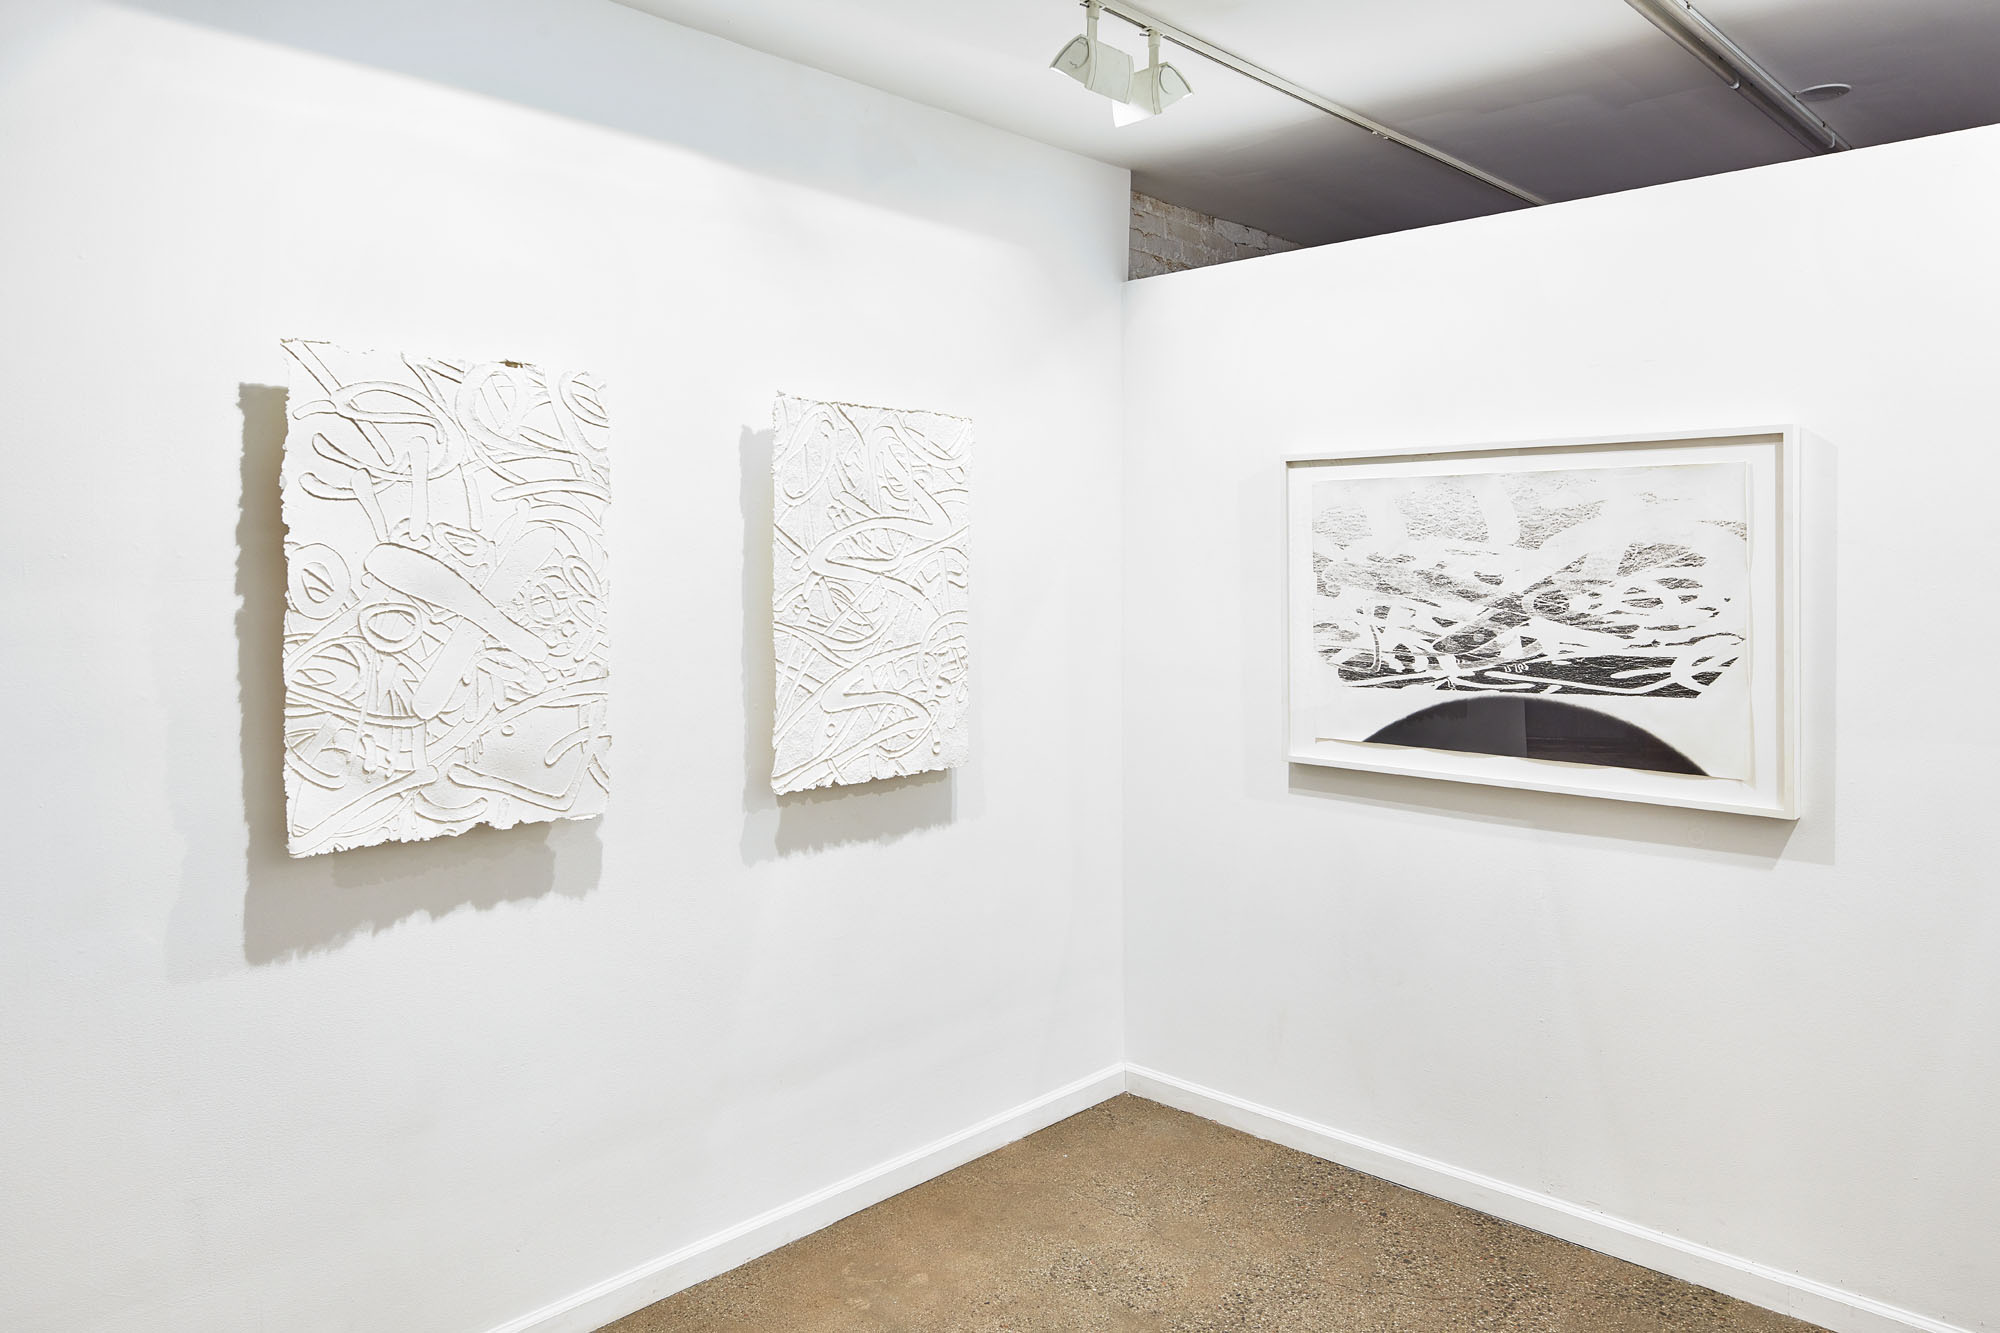 Installation view from Light/Weight with works by Steve Pauley.